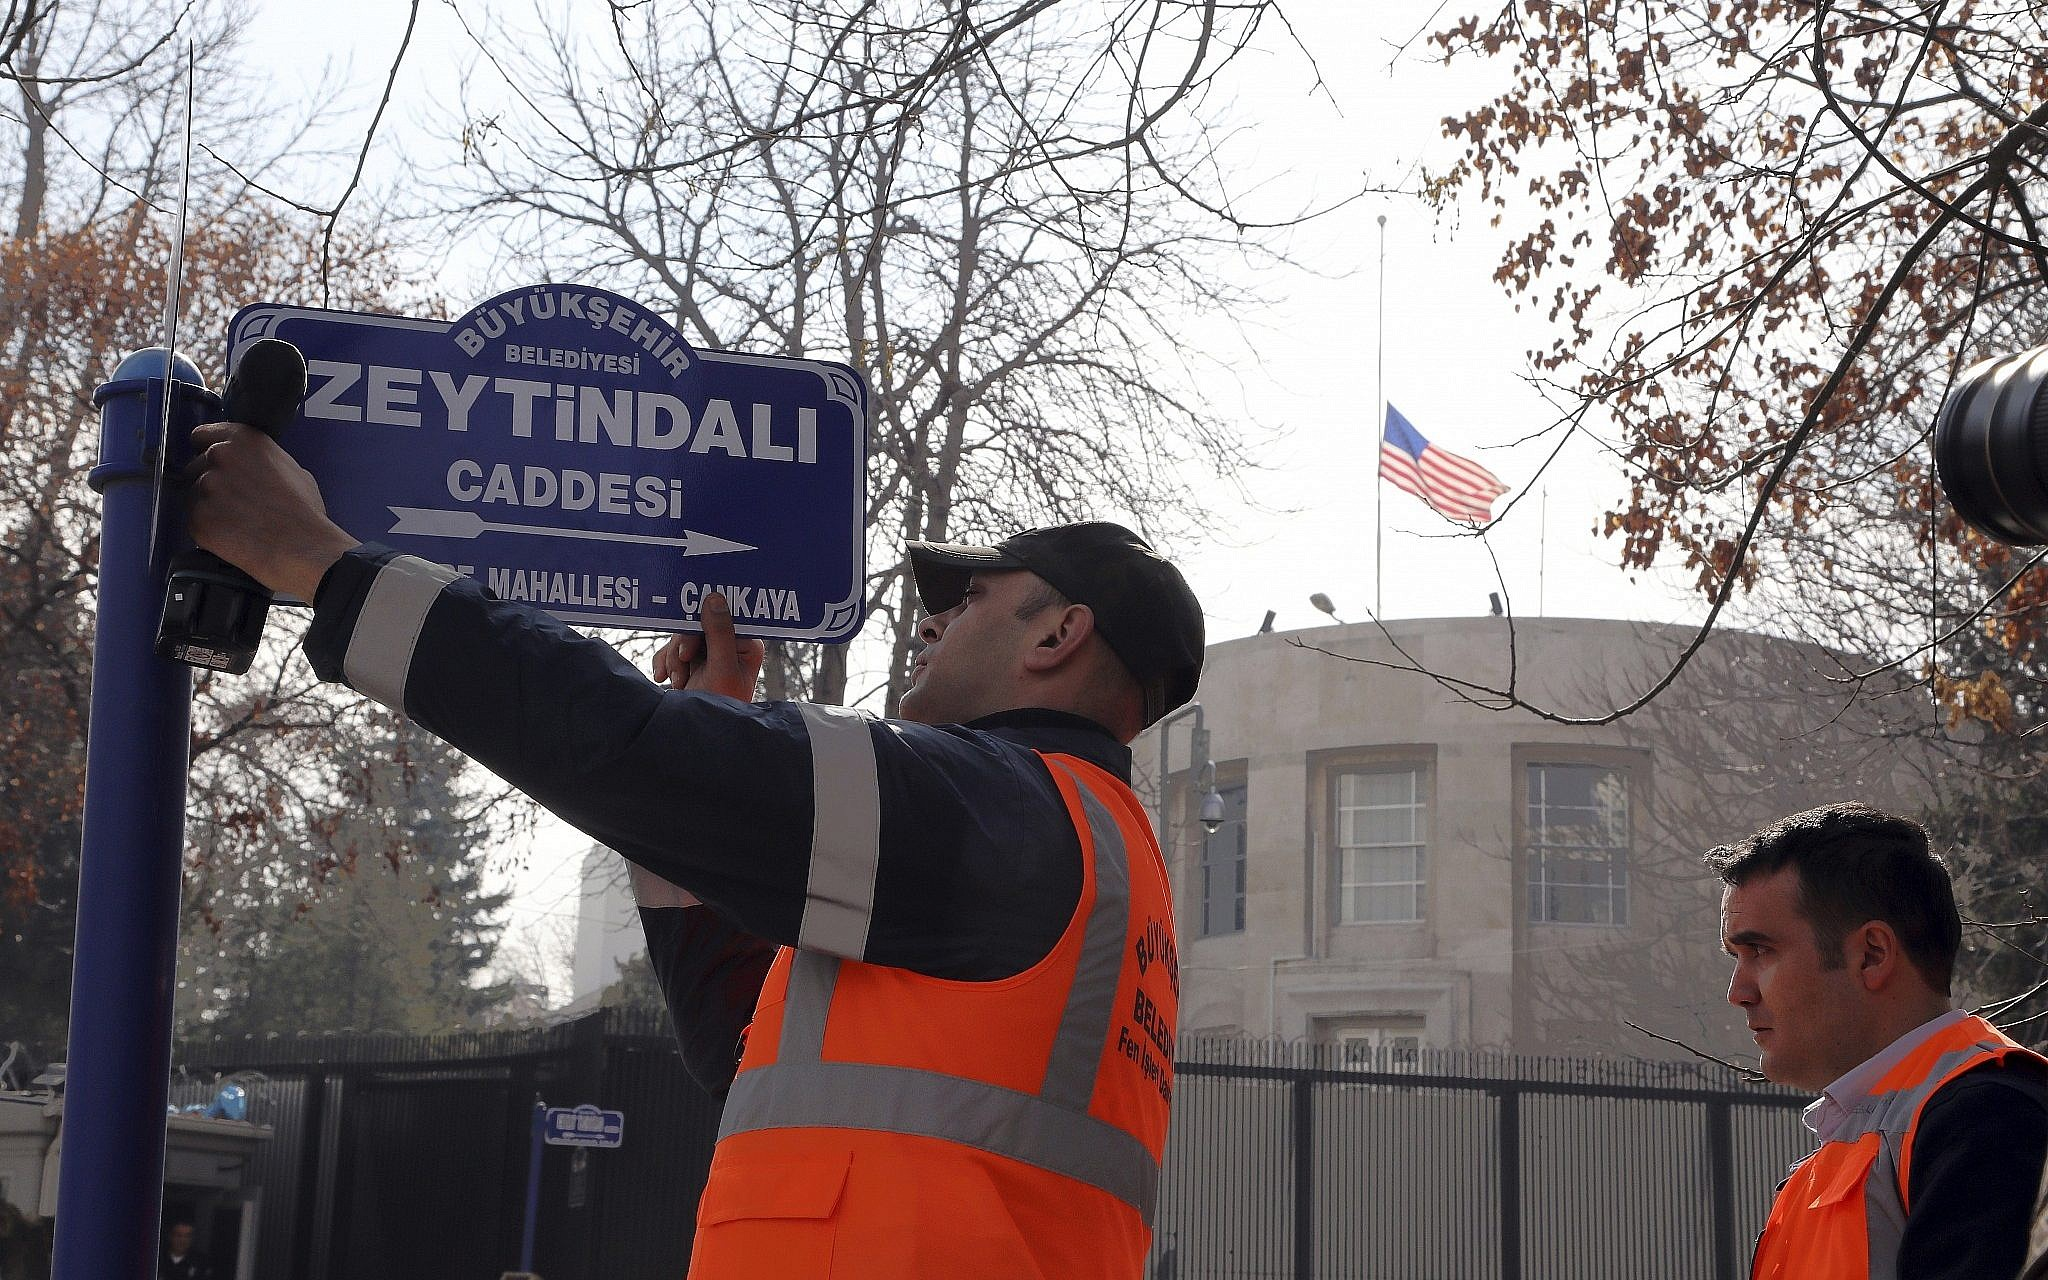 Turkey renames street with US mission after Syrian offensive